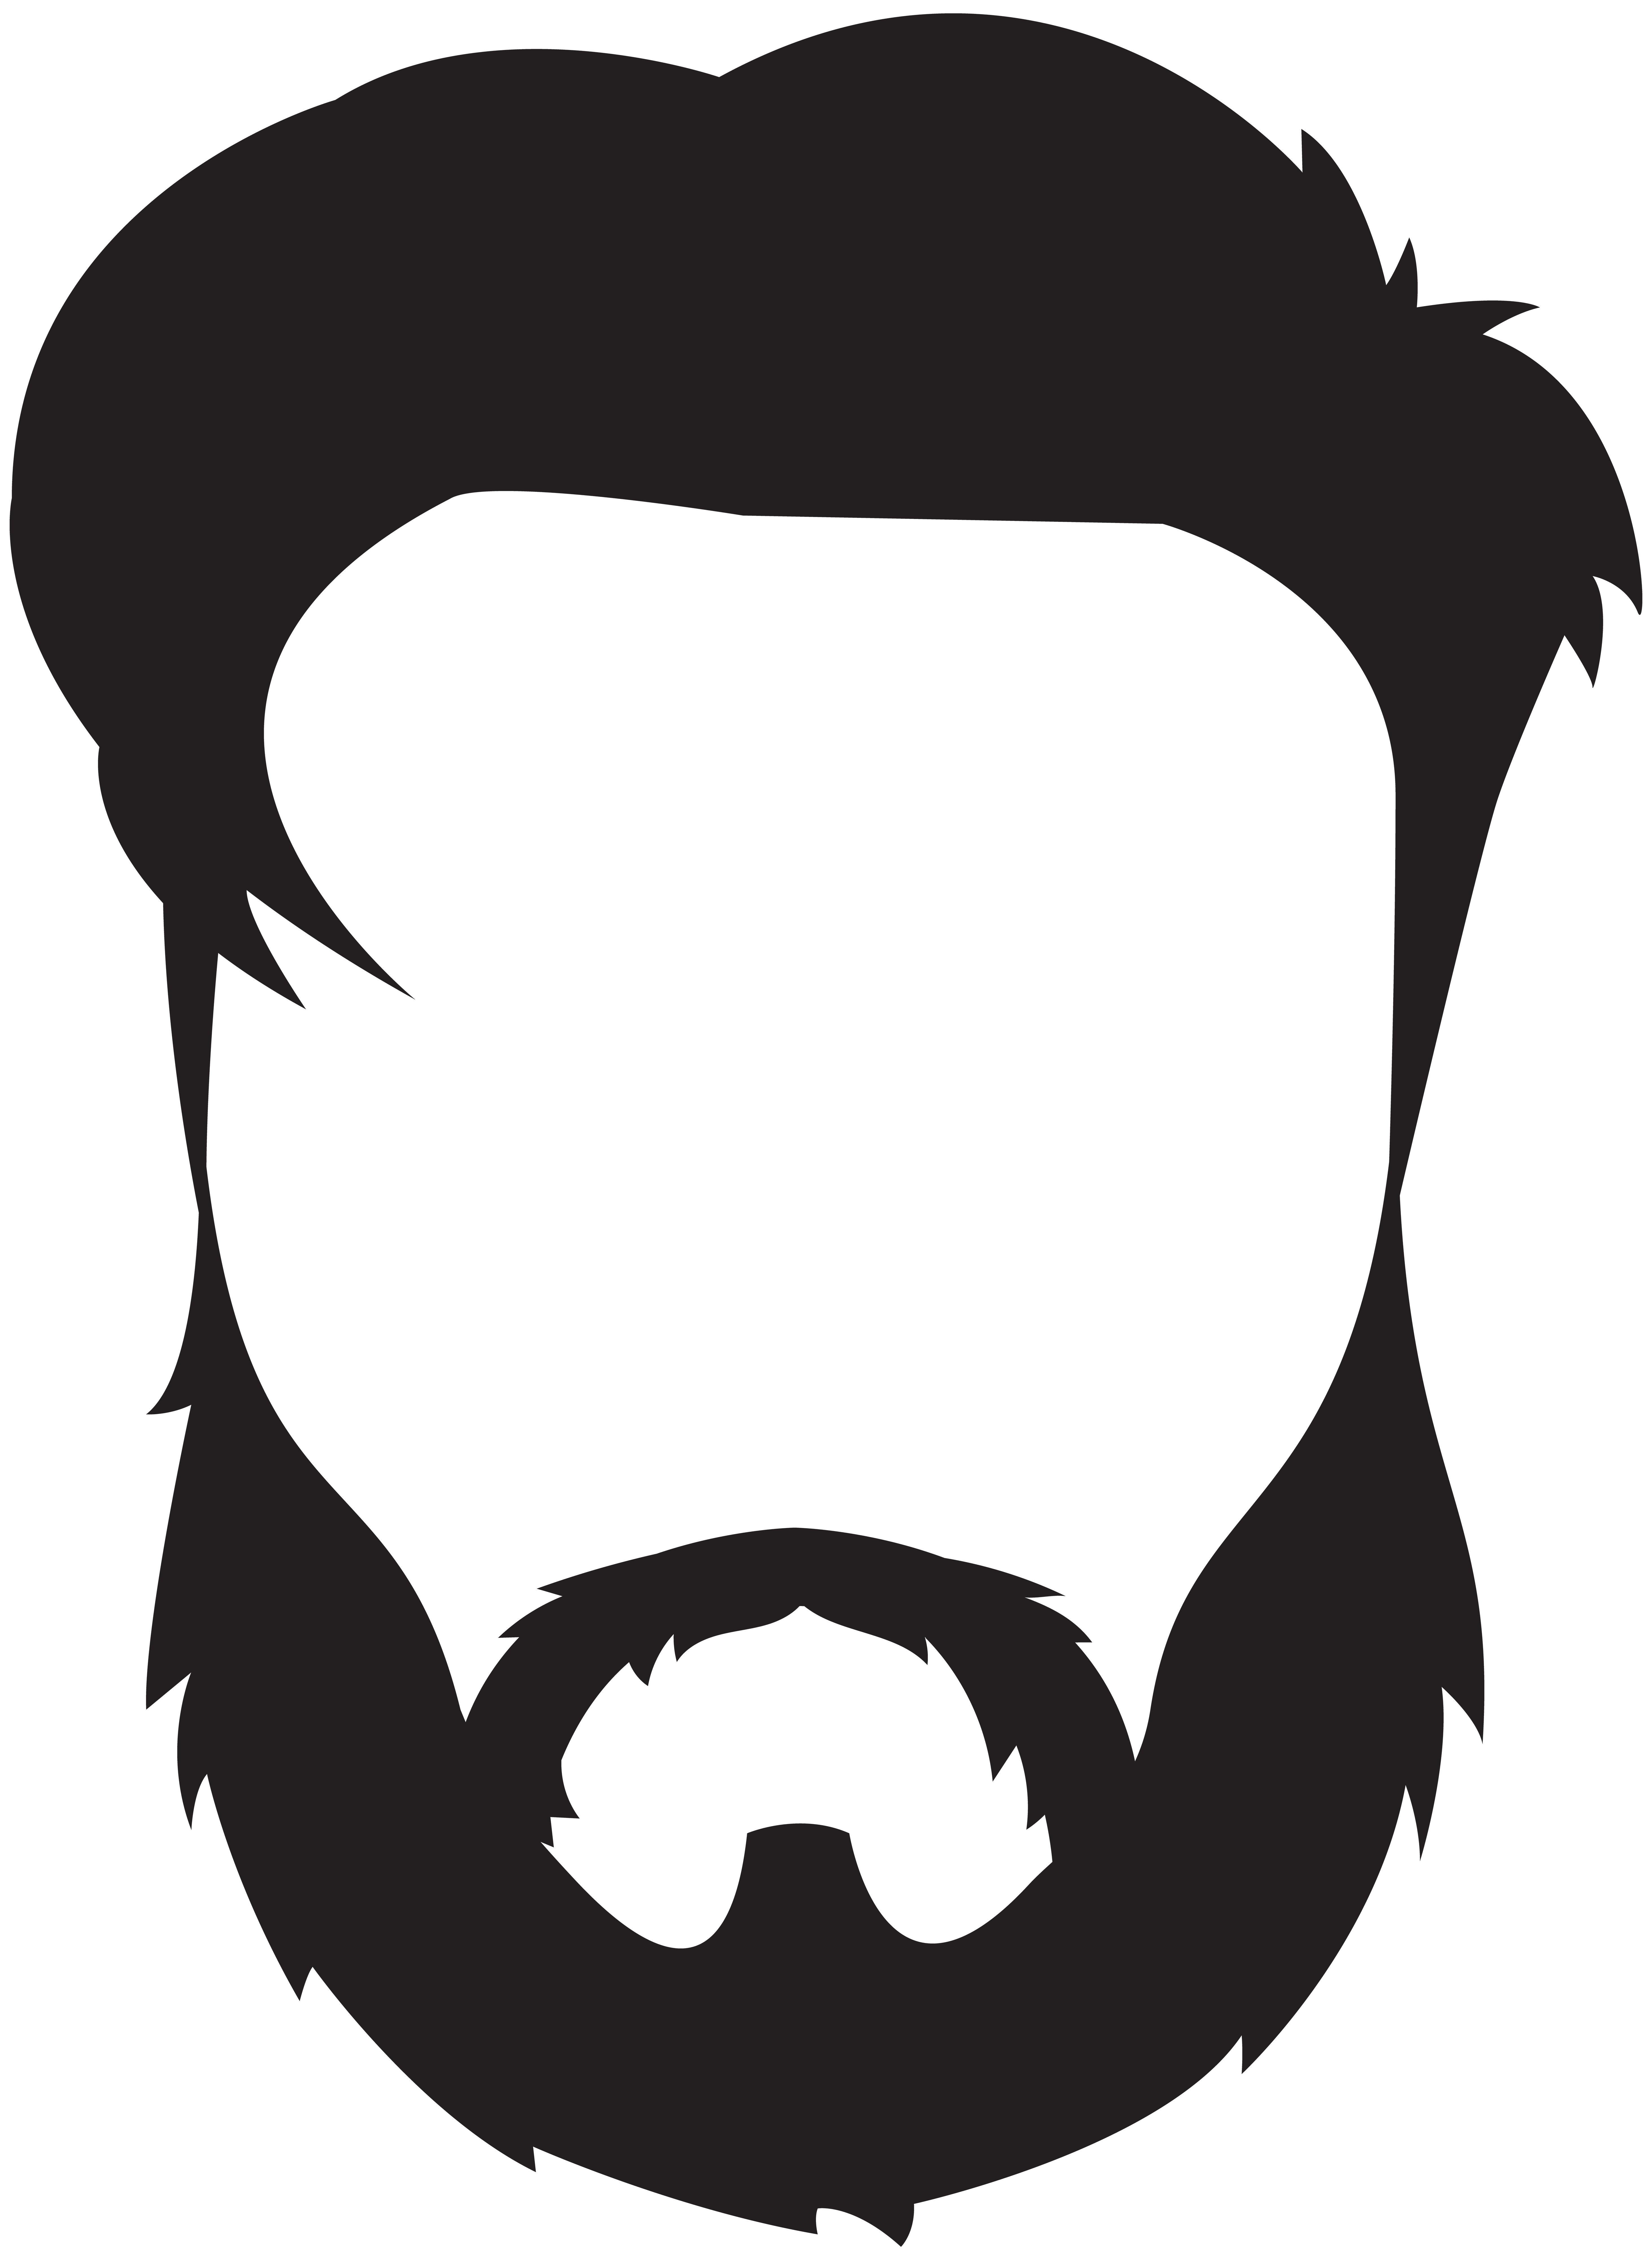 Clipart mustache different kind. Beard royalty free clip